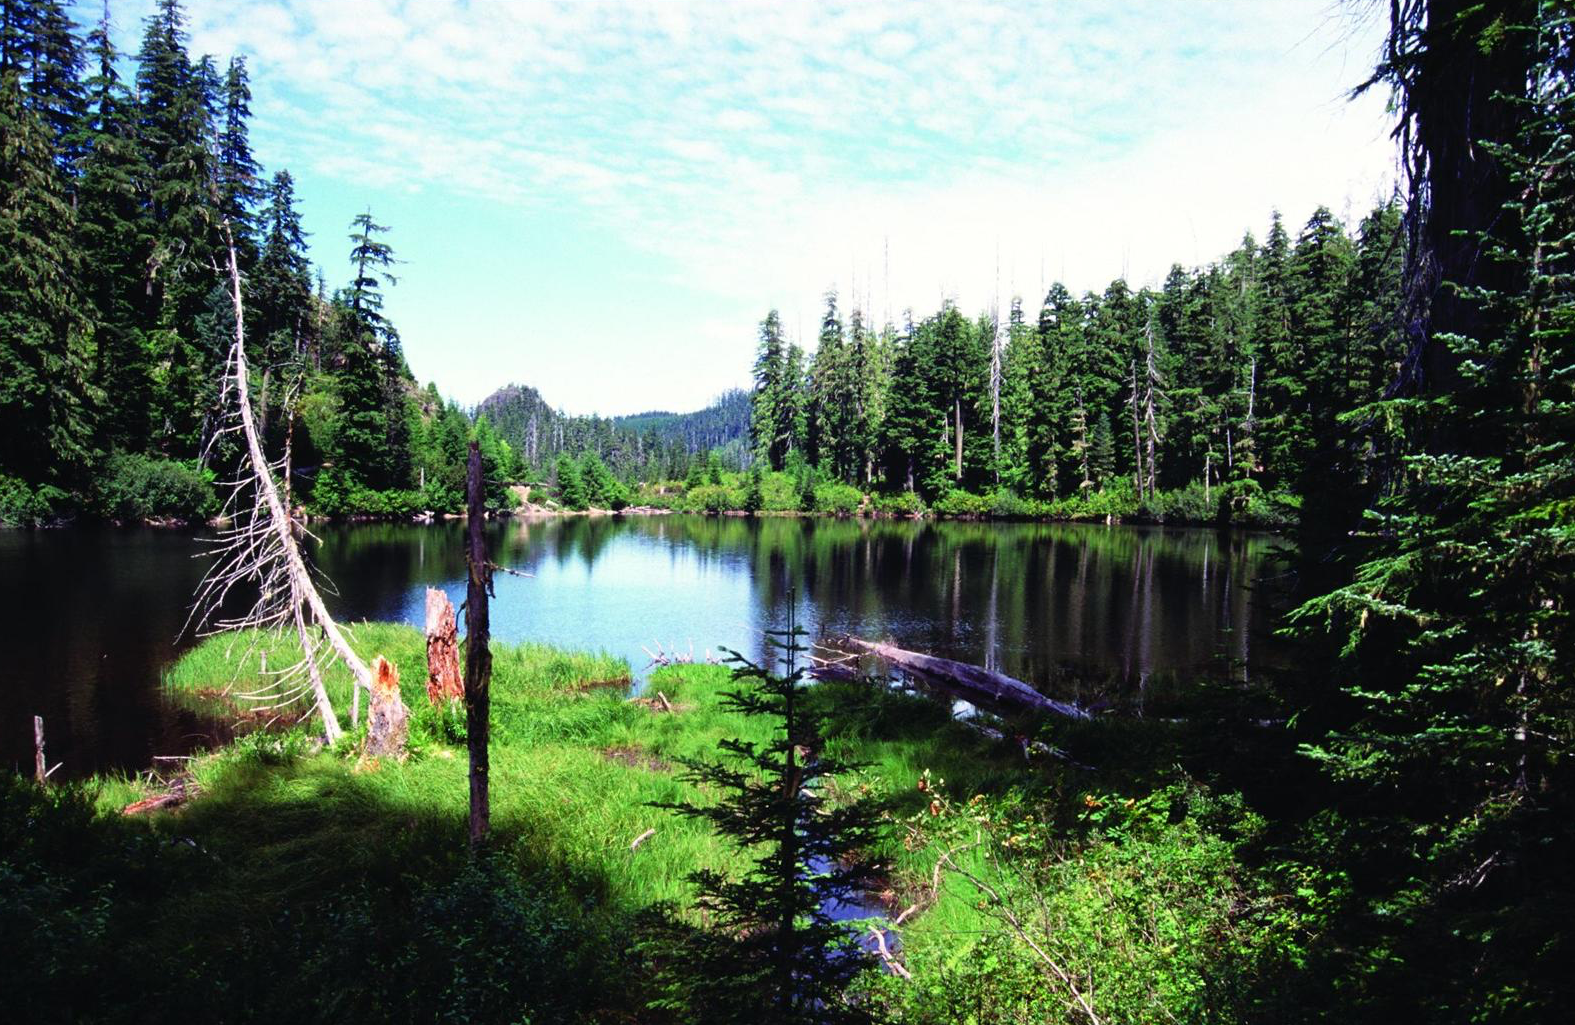 Figure 4.  Crabtree Lake in the Crabtree Valley (which contains some of the oldest known and largest trees left in Oregon) is the source of Crabtree Creek, which should be protected as a wild and scenic river . Source: David Stone, Wildland Photography (first appeared in   Oregon Wild: Endangered Forest Wilderness  ).